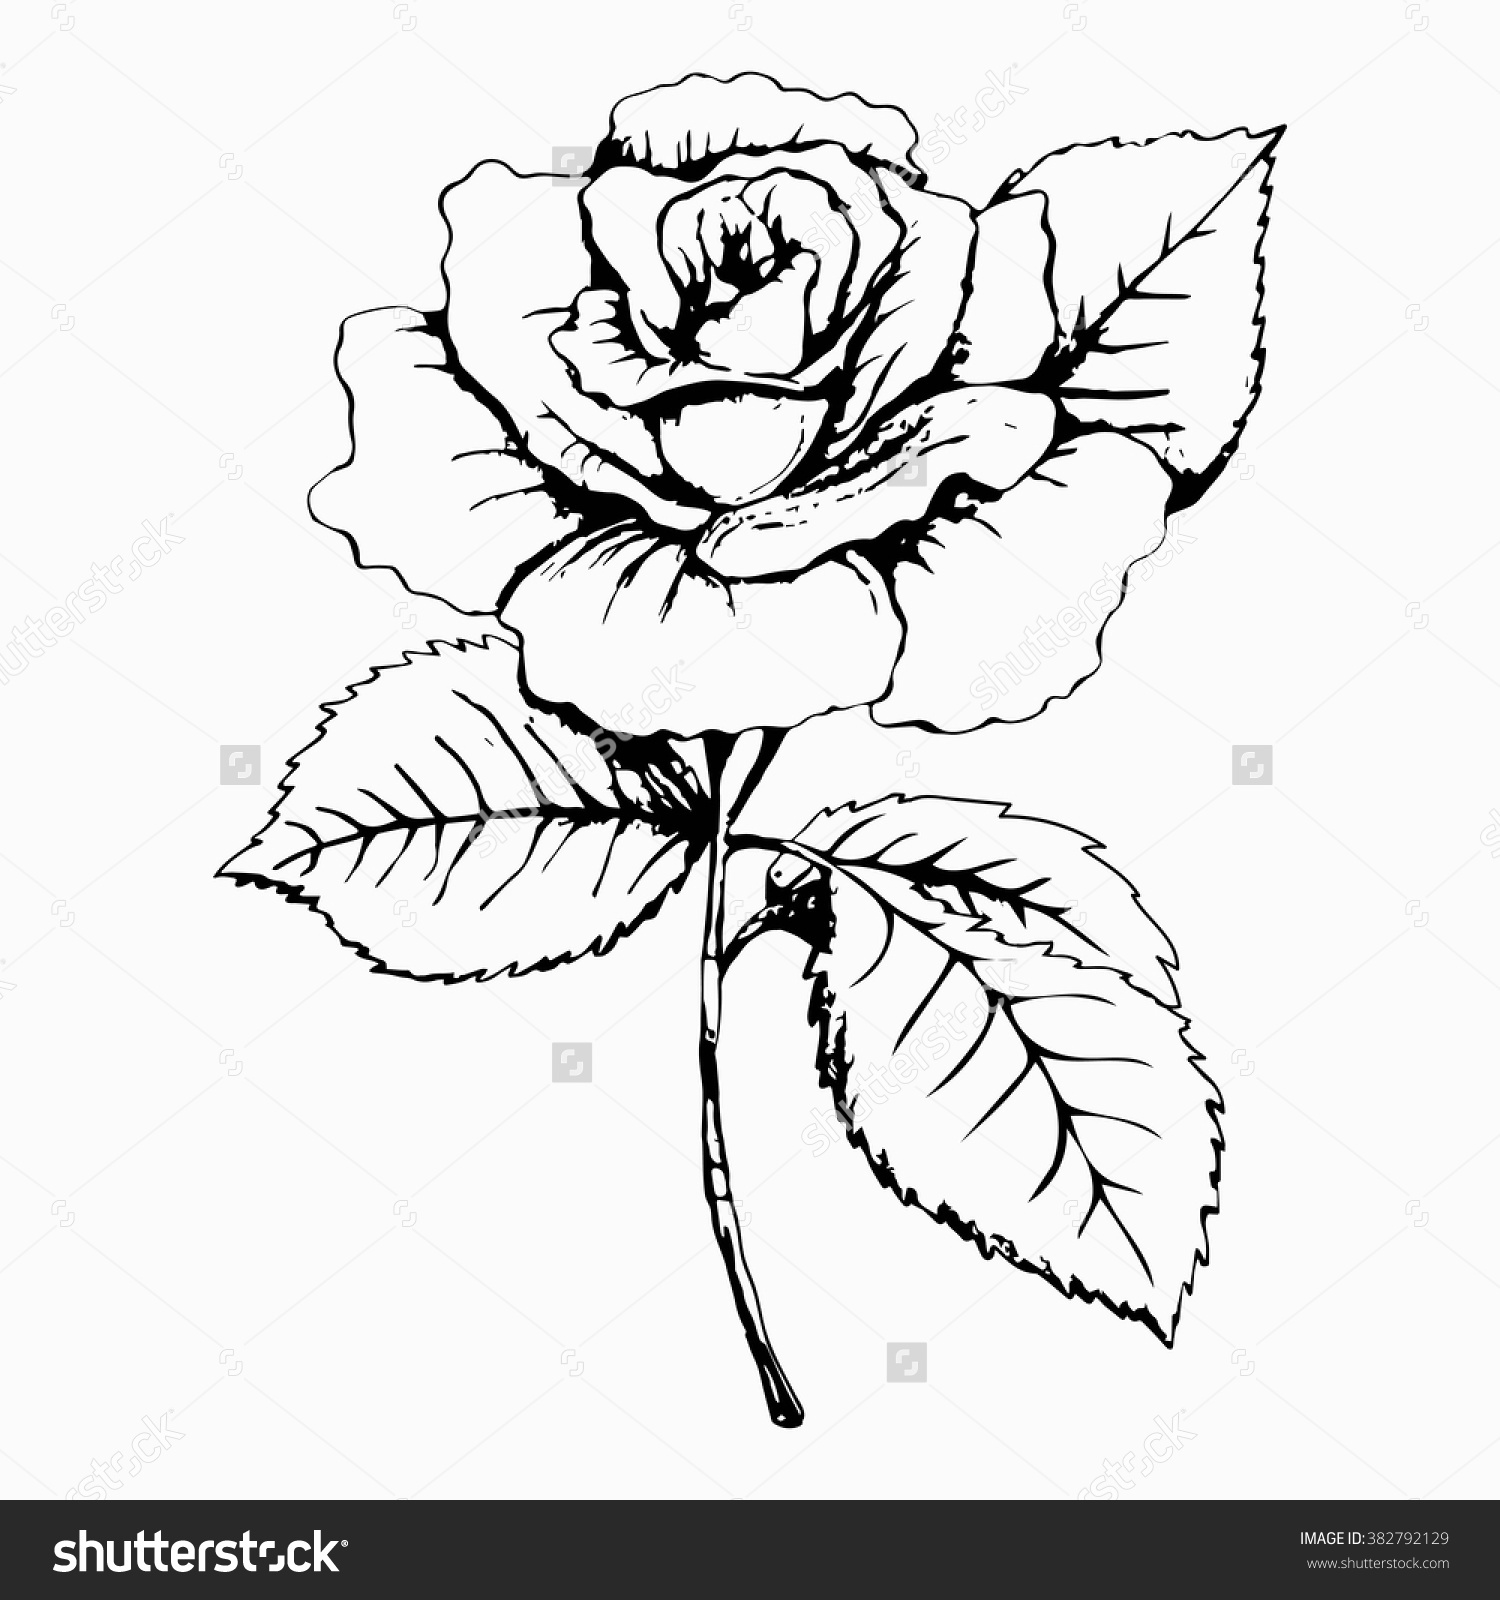 1500x1600 Flower Rose Sketch Painting Hand Drawing White Bud Petals Save